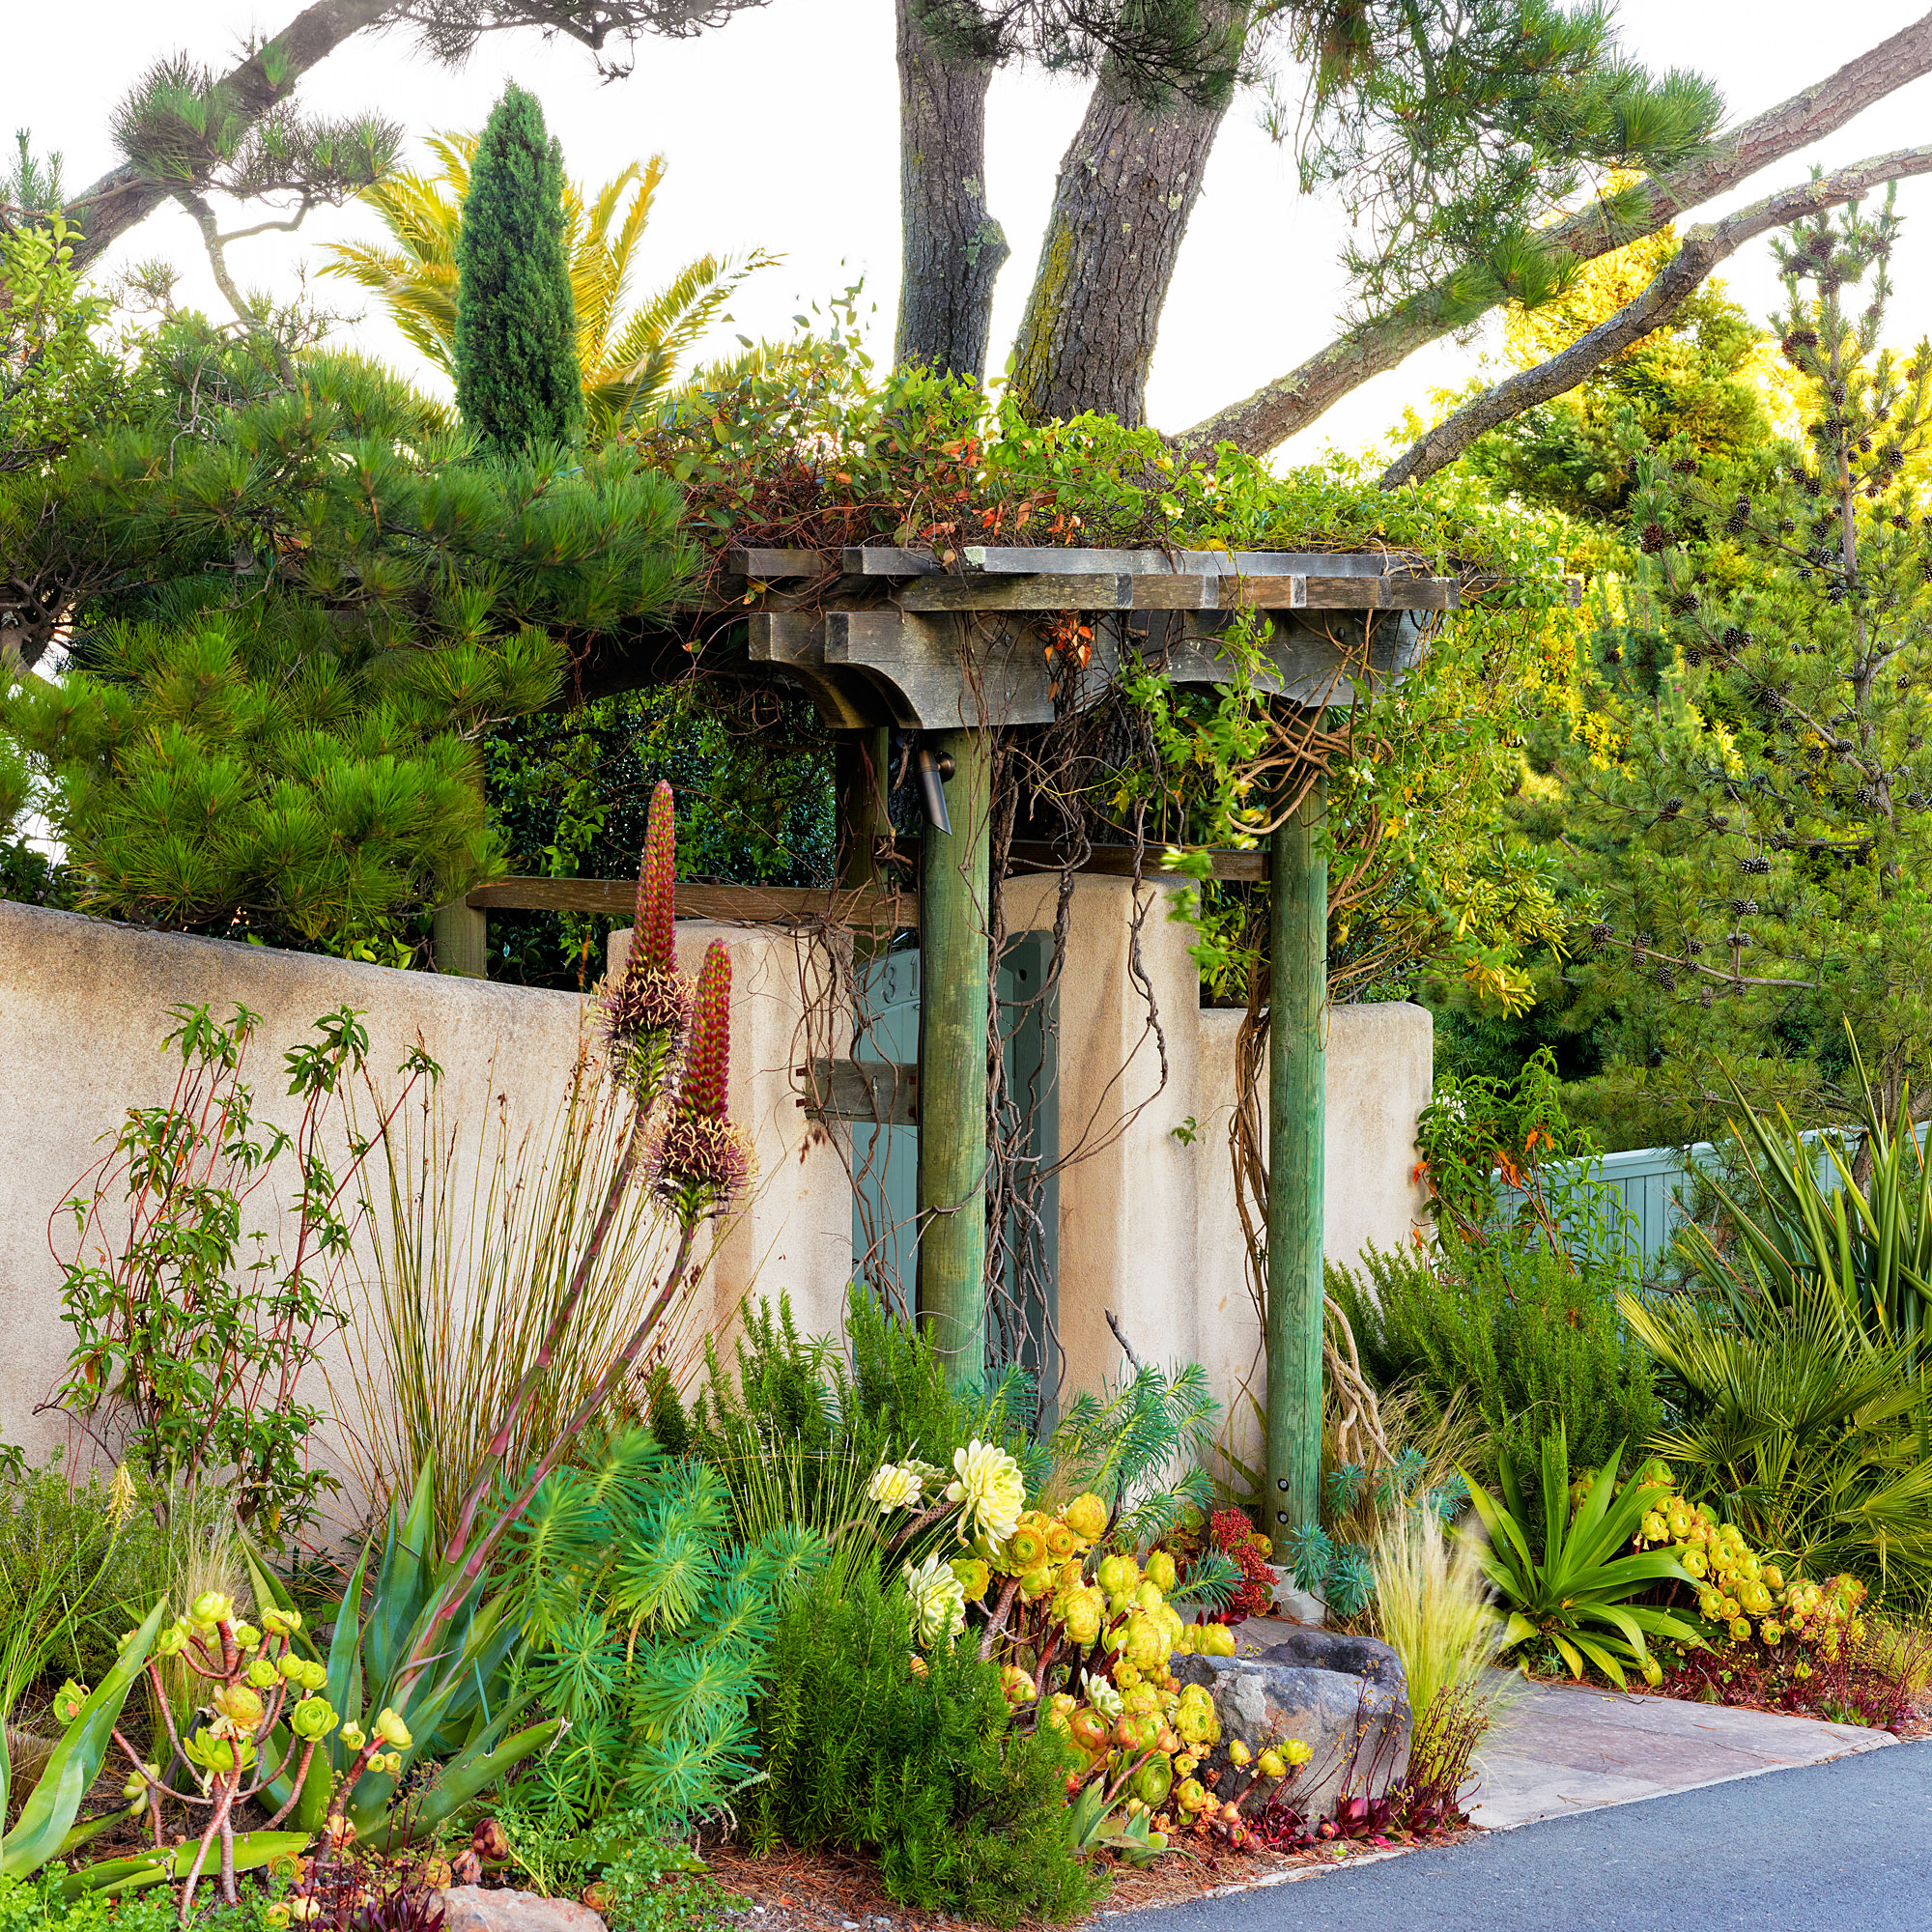 Mediterranean Style Home With Fantastic Curb Appeal: 6 Lessons For Mediterranean-Climate Gardening